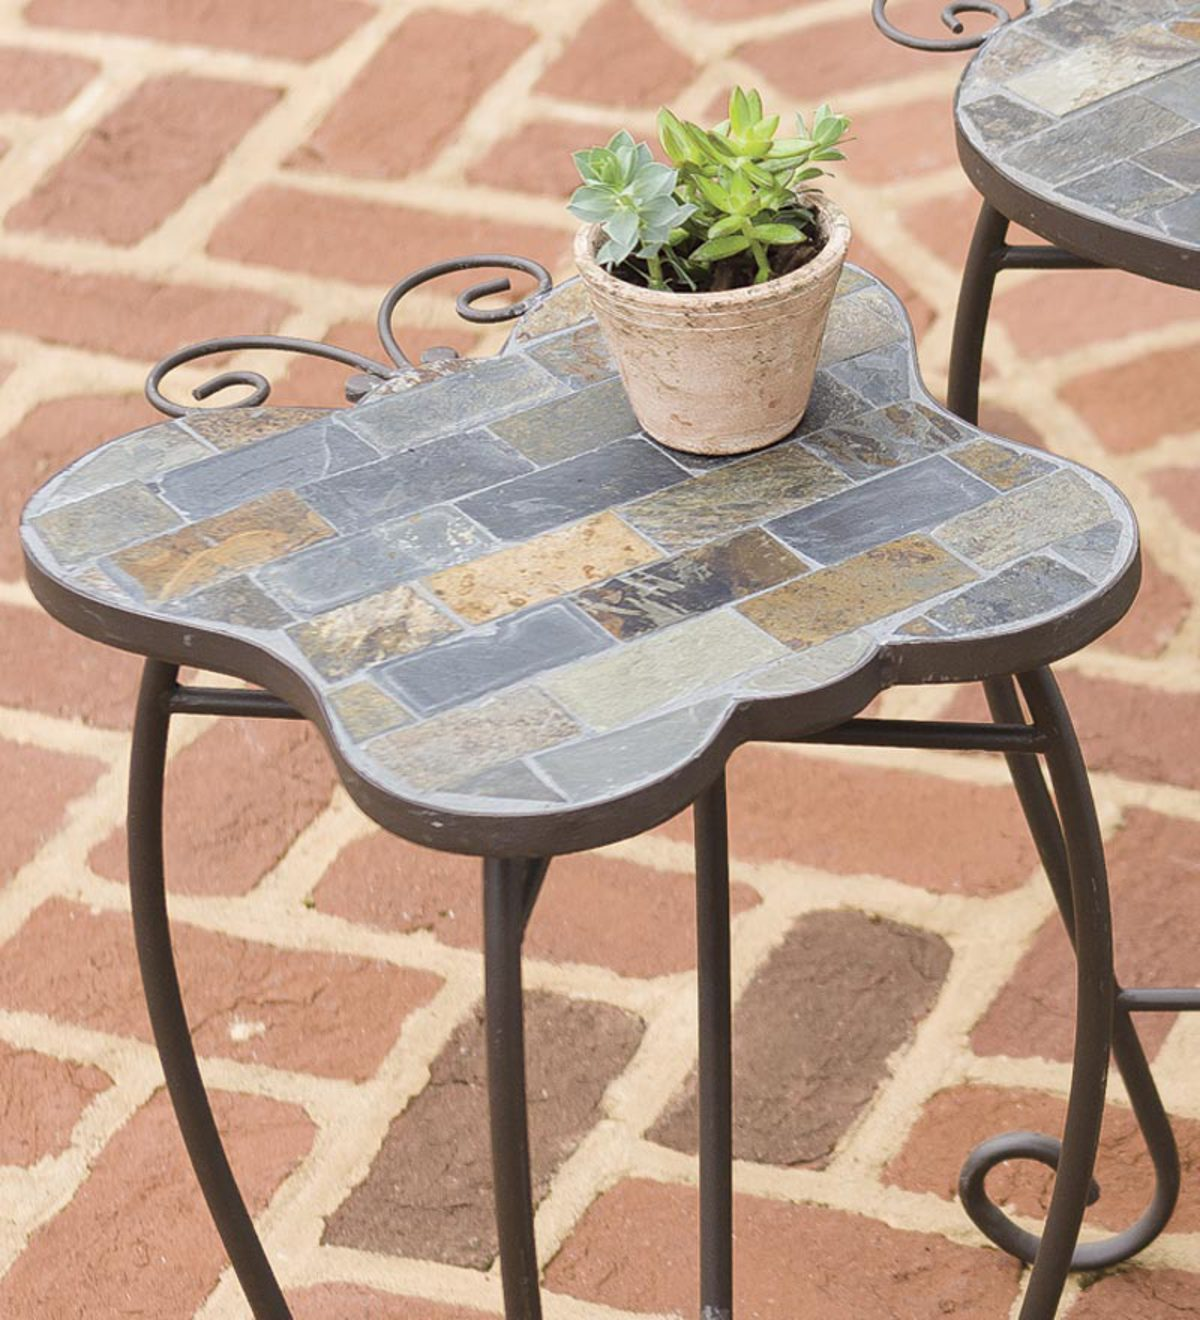 slate butterfly ladybug and turtle outdoor accent tables with iron base table skinny console unusual end circular nesting bar top height vintage brass side terence conran